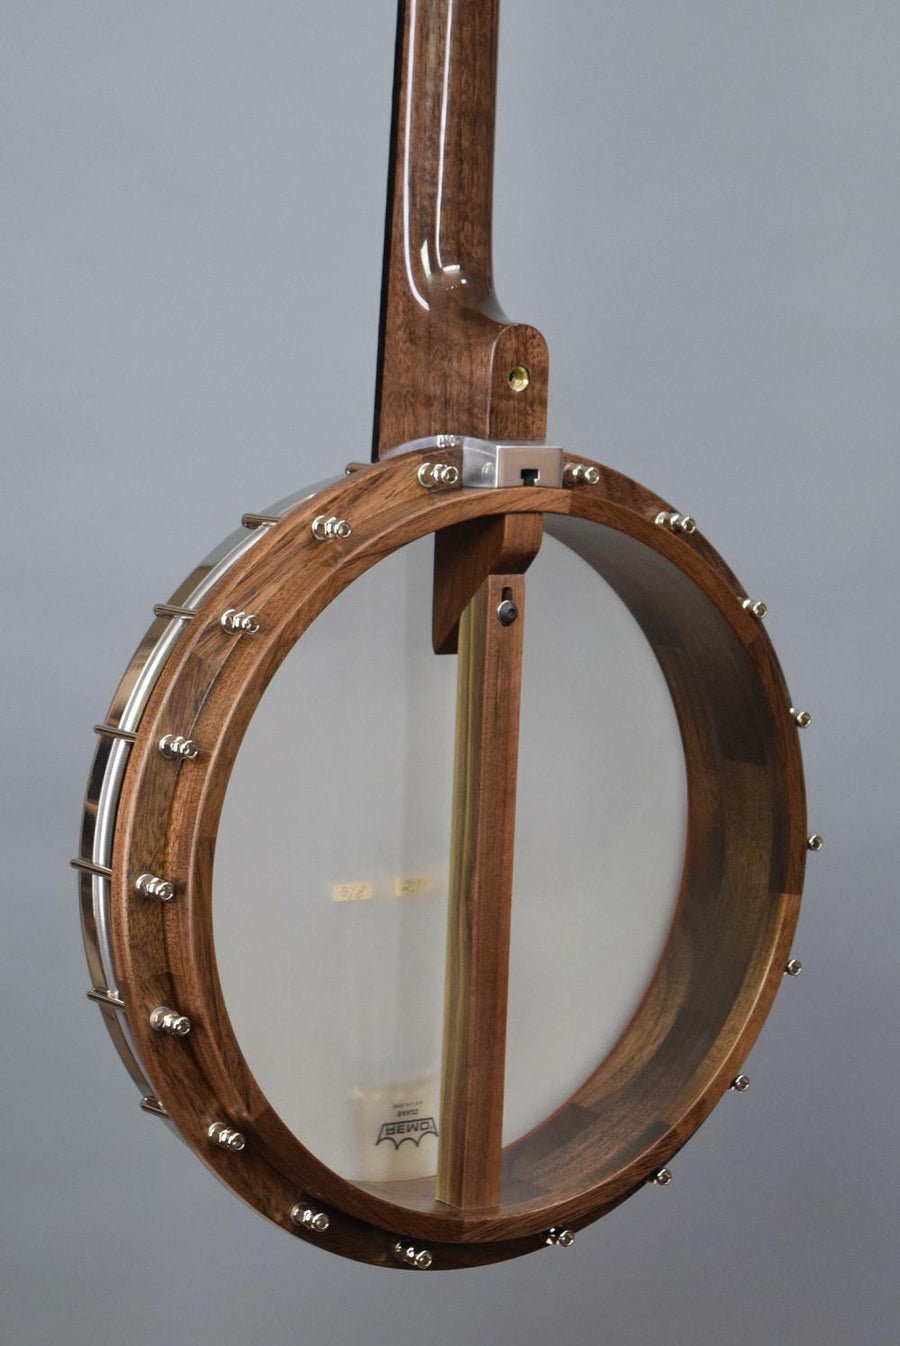 "Nechville Atlas Standard 12"" Short Scale Open Back Banjo"